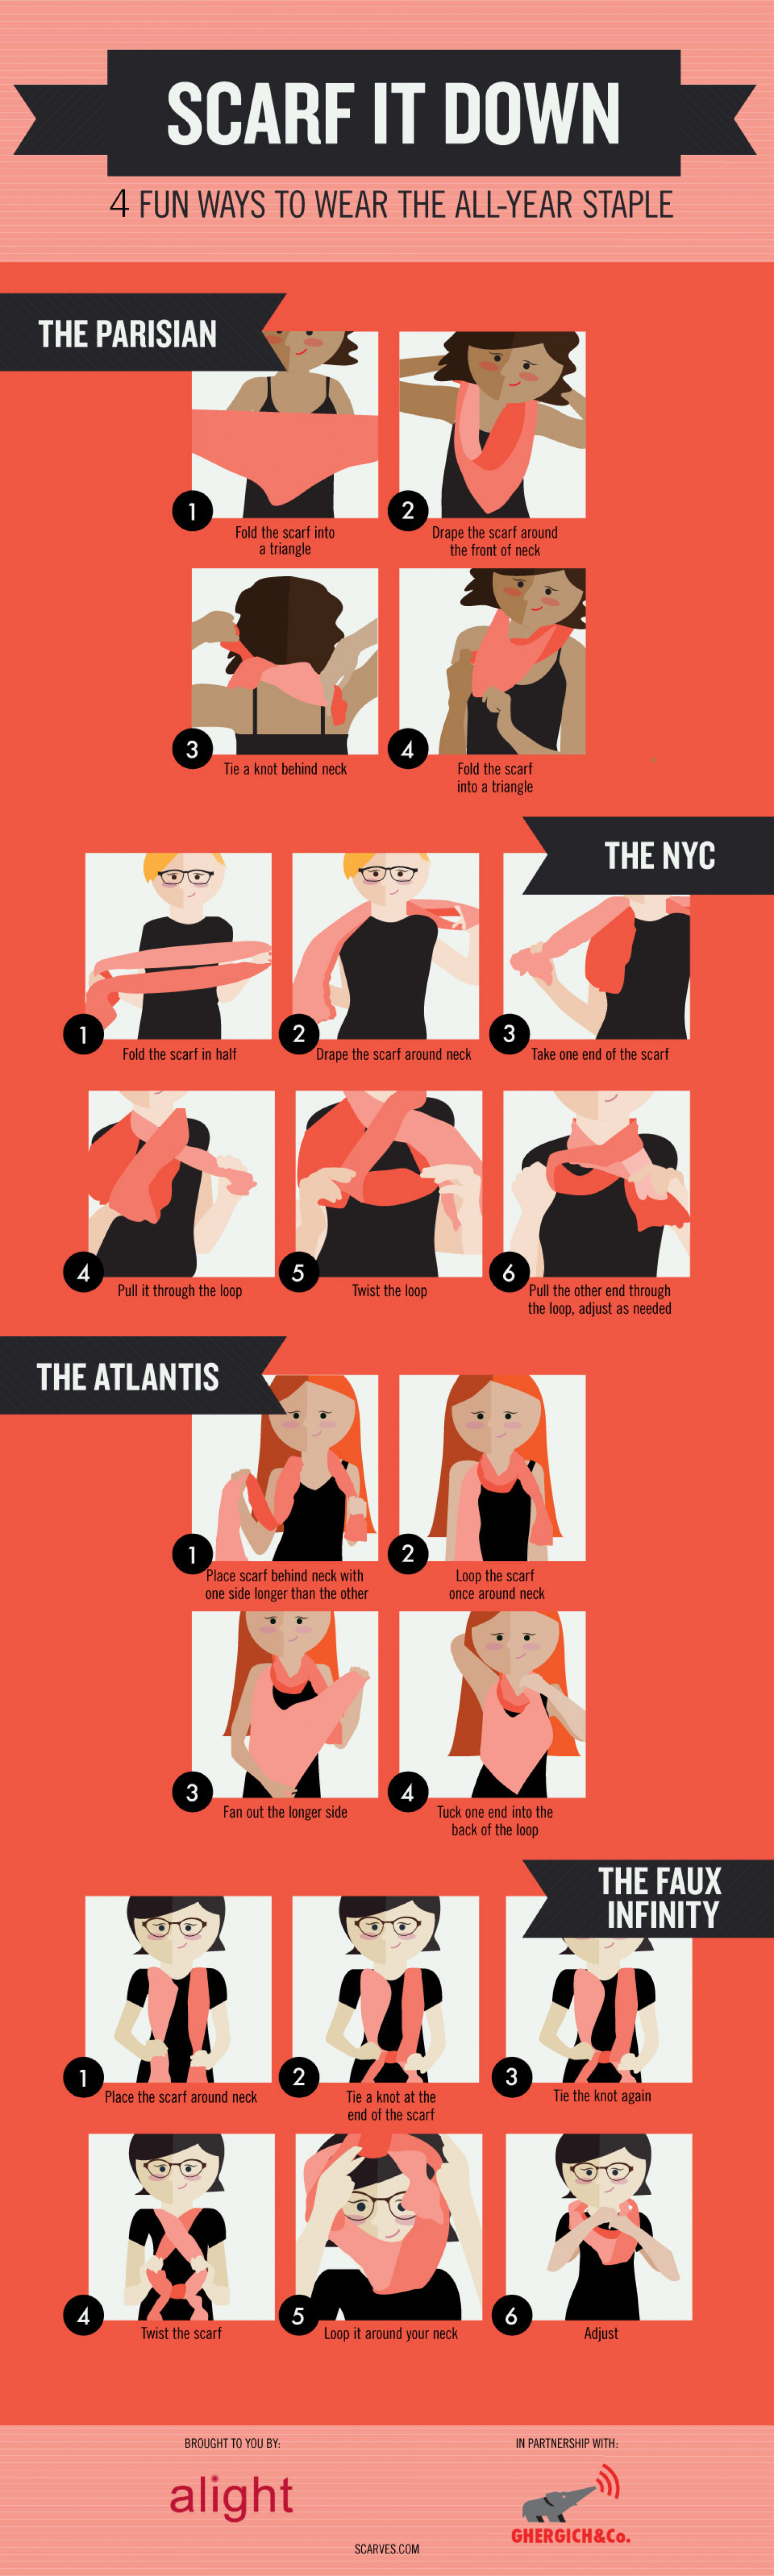 Scarf it Down: 4 Fun Ways to Wear the All-Year Staple Infographic